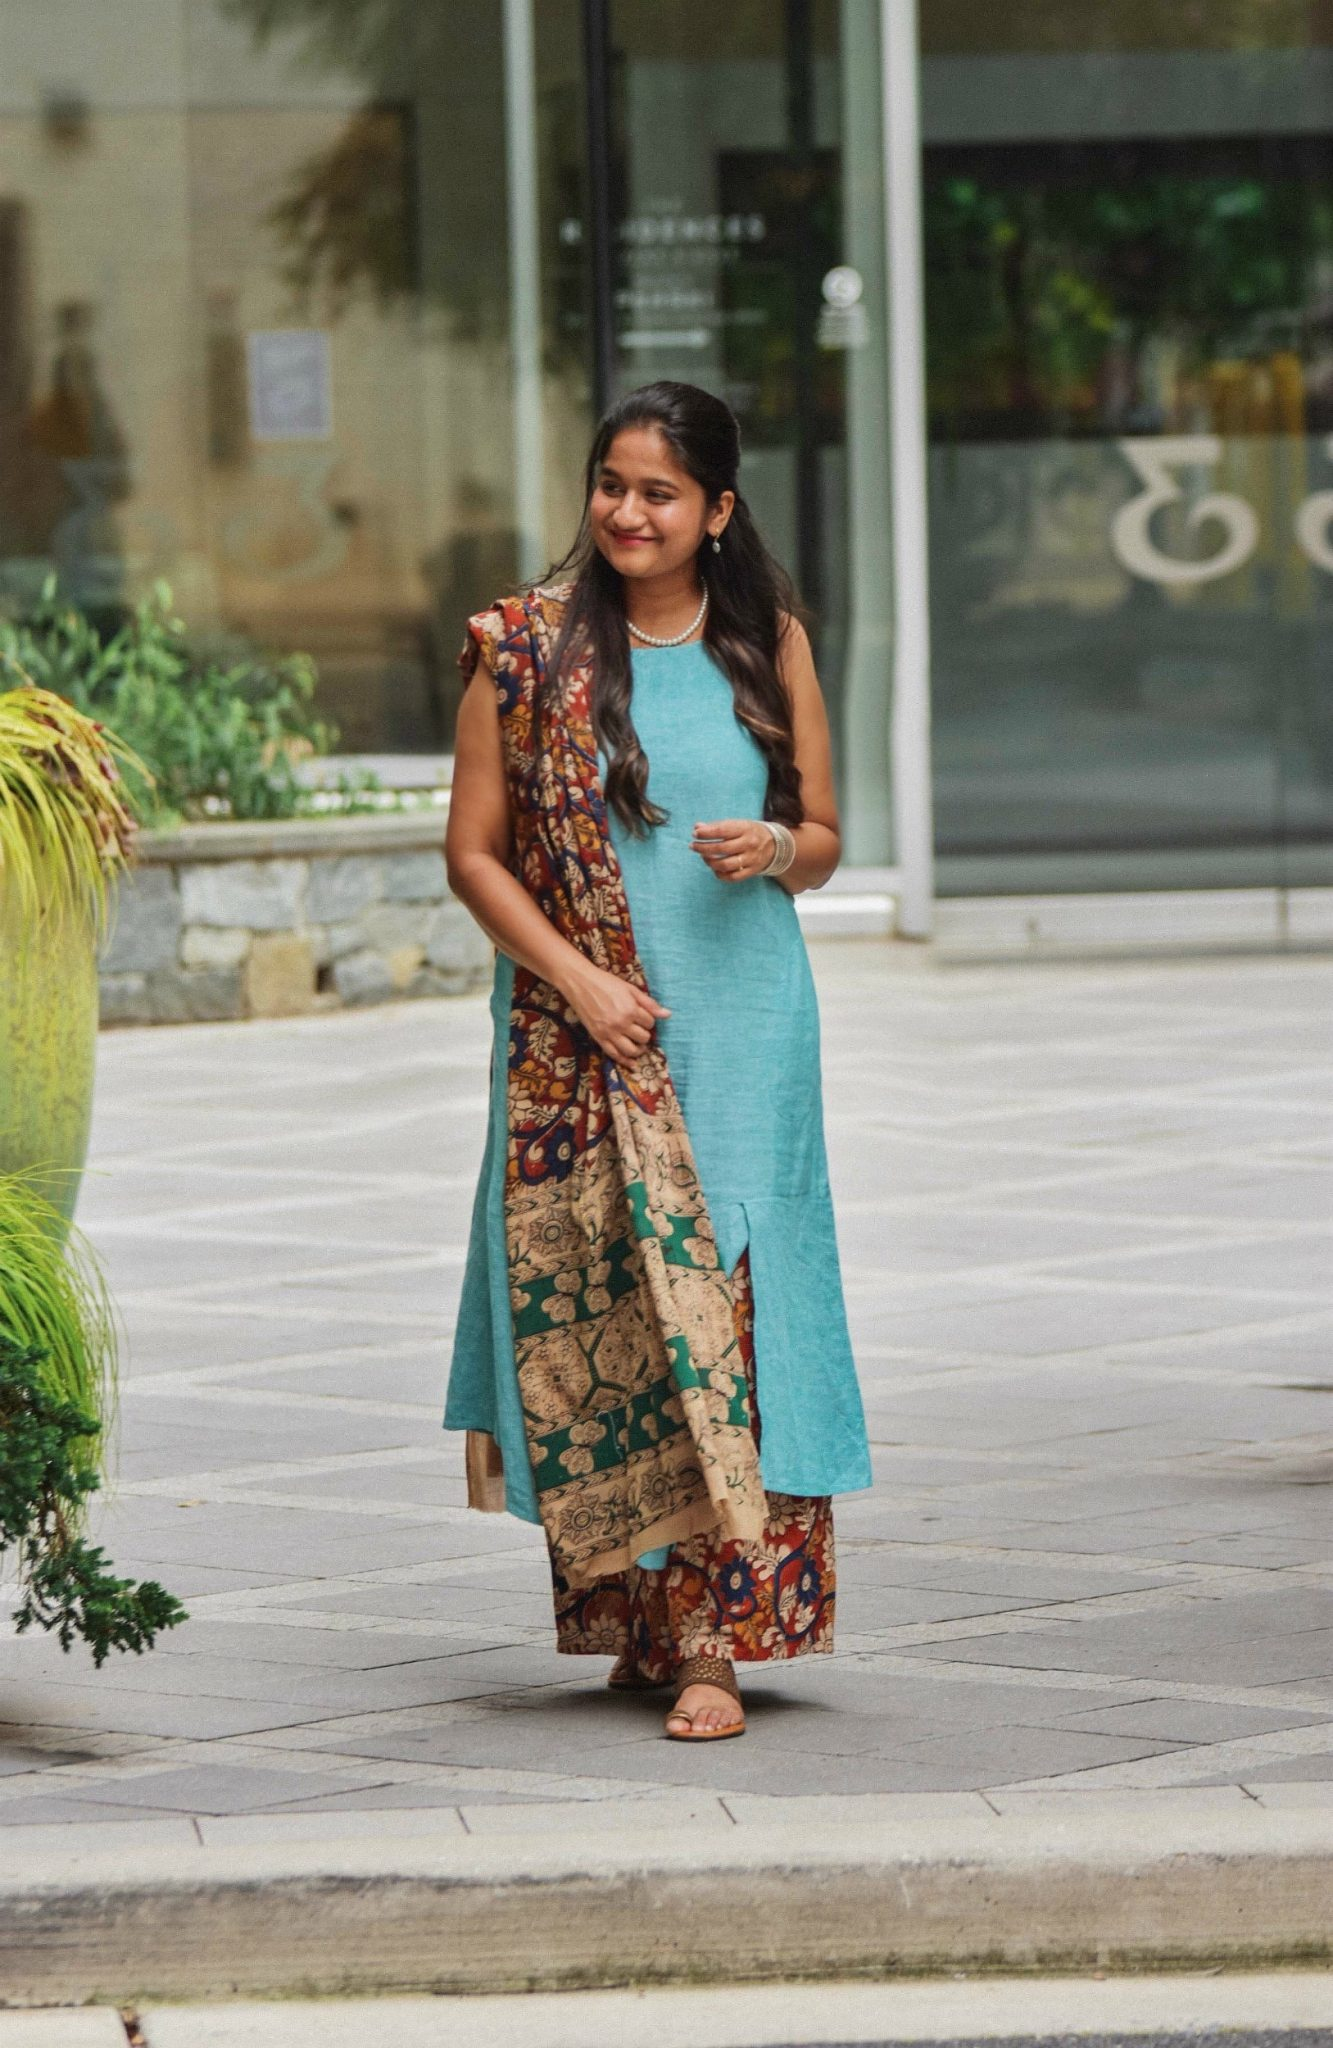 Indo western outfit with Handlooms- wearing Pure Jill Linen & Rayon Asymmetric Dress, Kalamkari Palazzo pants and Kalamkari Dupatta, J.crew factory wedges, Pearl necklace | Indo Western by popular Maryland modest fashion blog, Dreaming Loud: image of a woman wearing an Indo Wester outfit with a blue linen dress, Kalamkari handloom print pants, and Kalamkari dupatta.